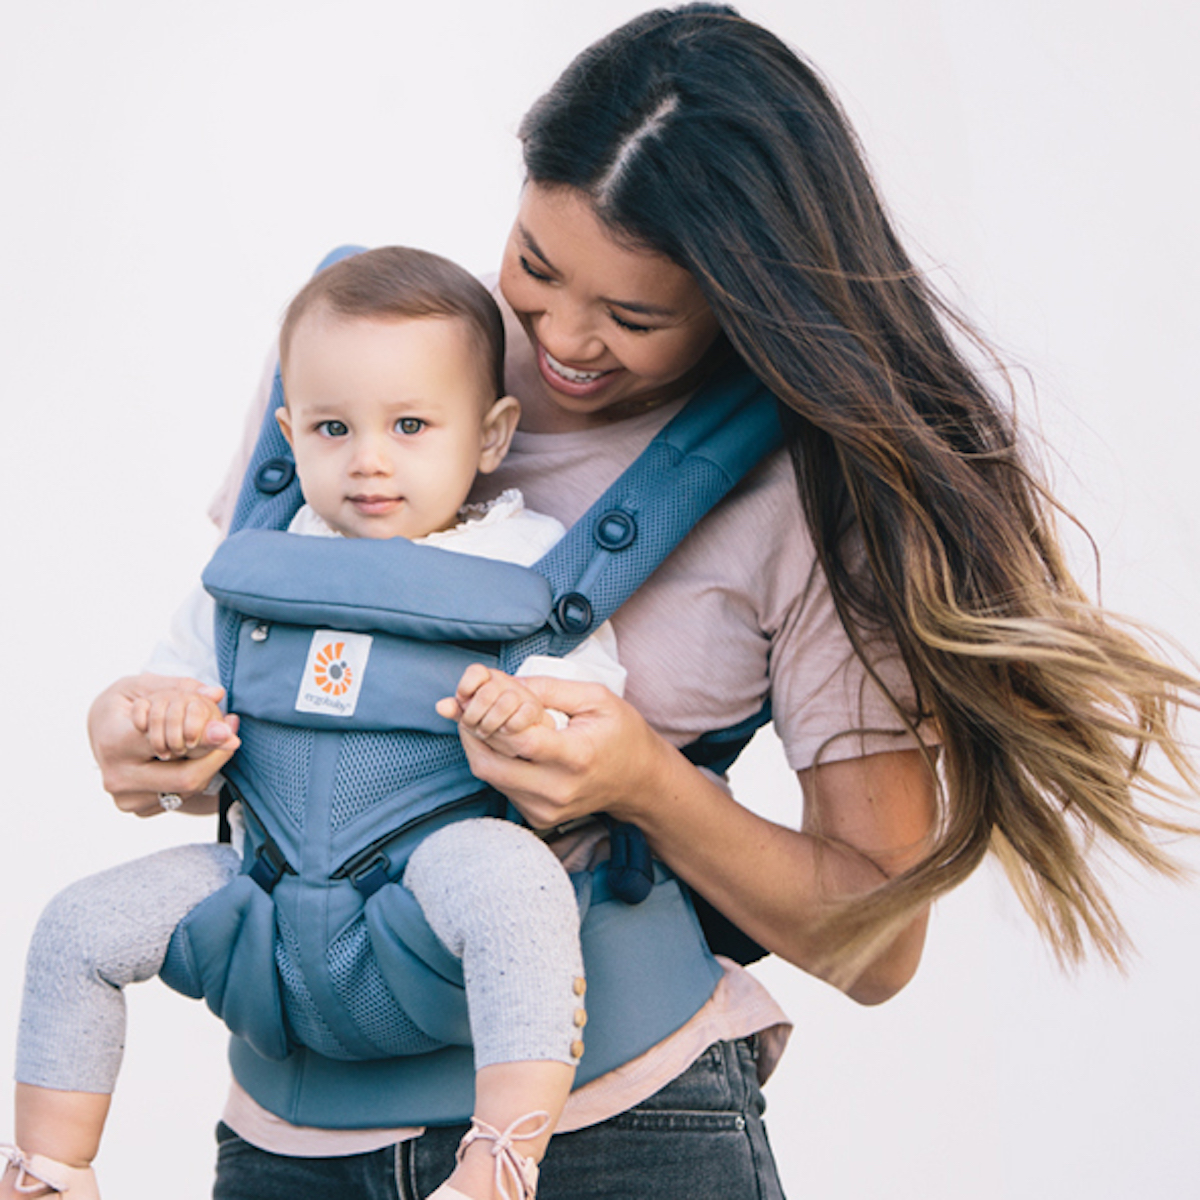 Ergobaby 360 degree baby carrier